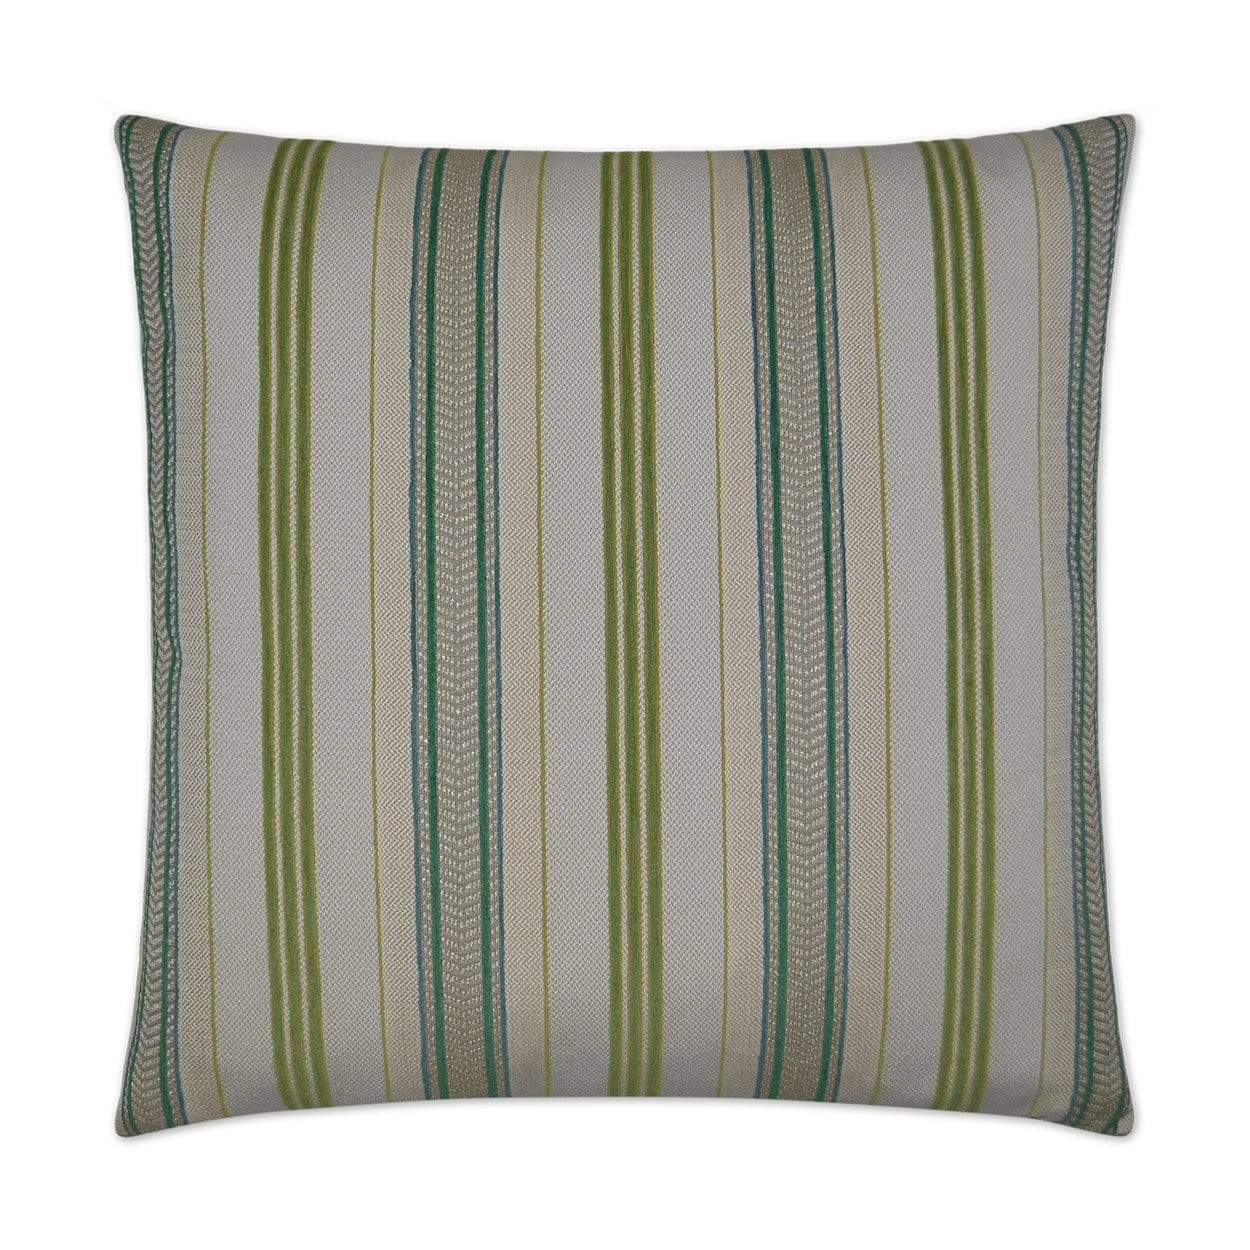 D.V. Kap D.V. Kap Hambo Pillow - Available in 2 Colors Green 2475-G